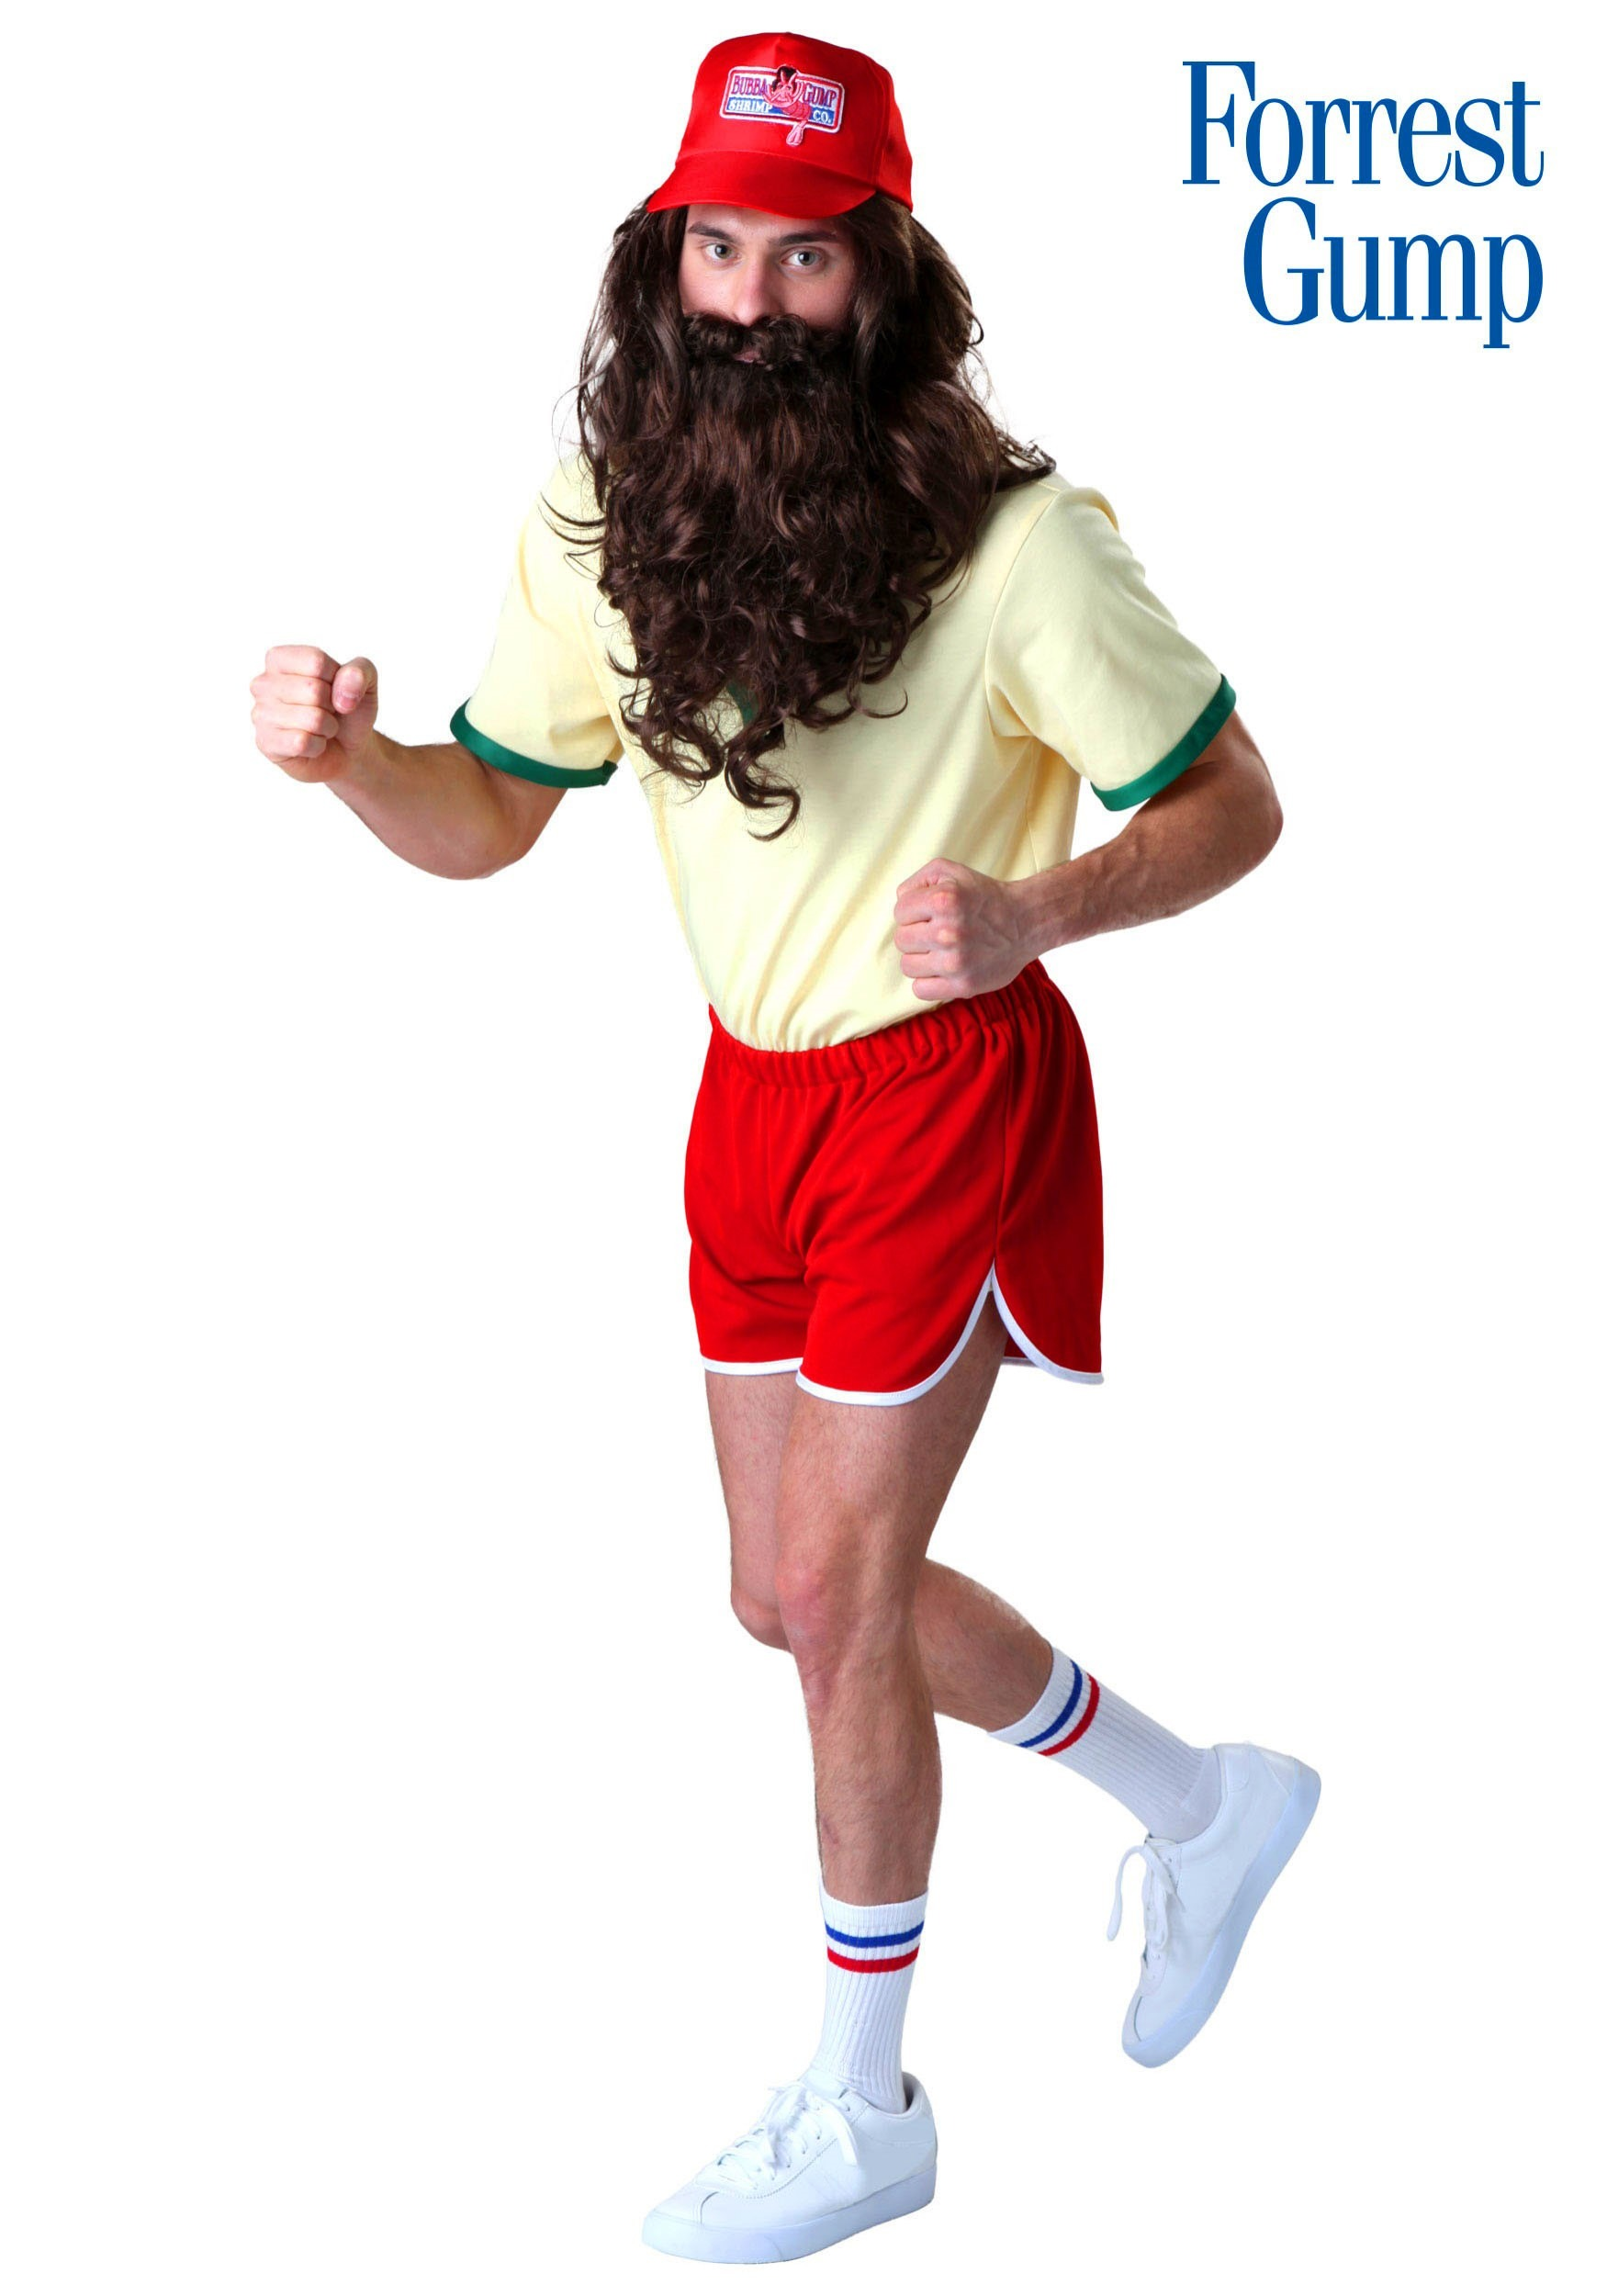 Sports halloween costumes uniforms halloweencostumes running forrest gump costume solutioingenieria Choice Image